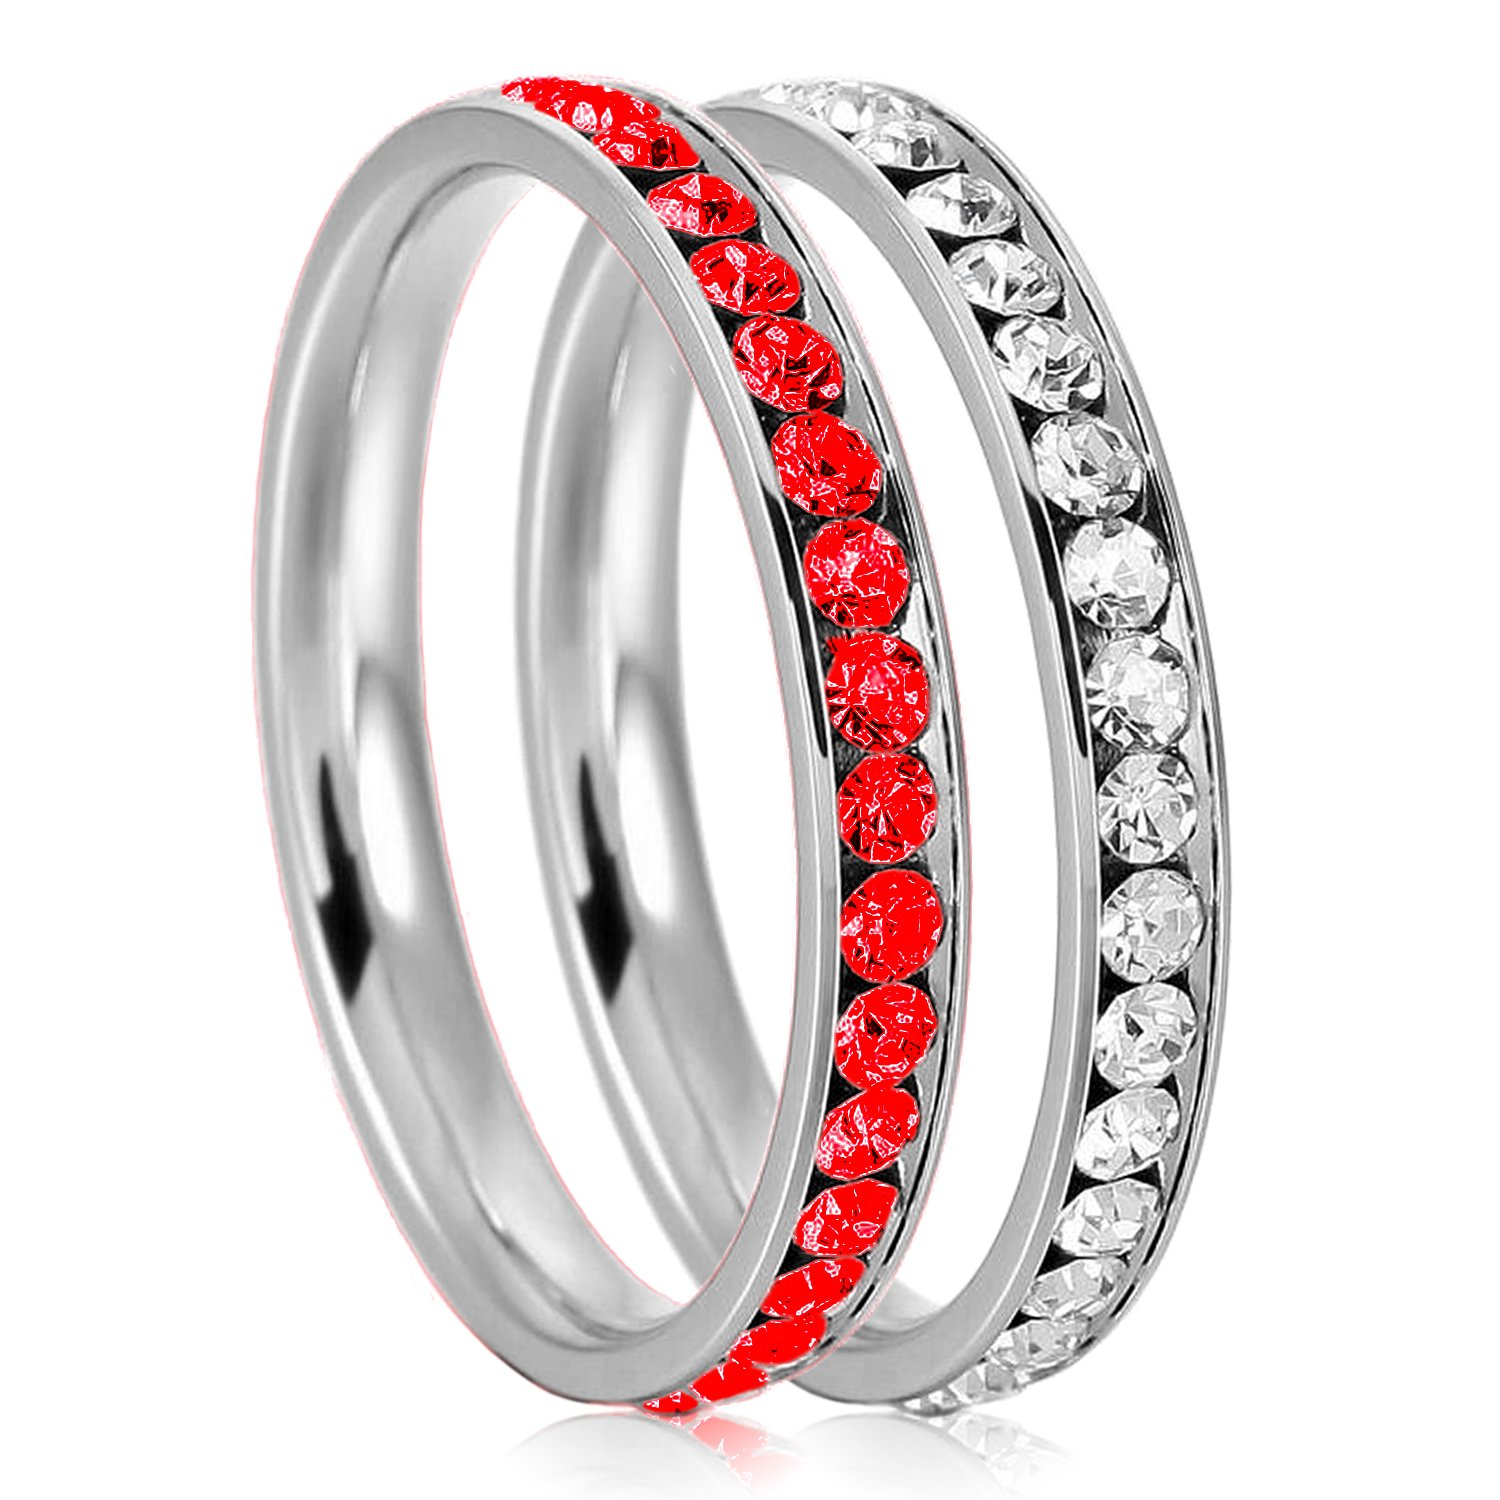 3mm Stainless Steel Eternity Ruby & Clear Color Crystal Stackable Wedding Band Rings (2 pieces) Set, Size 10